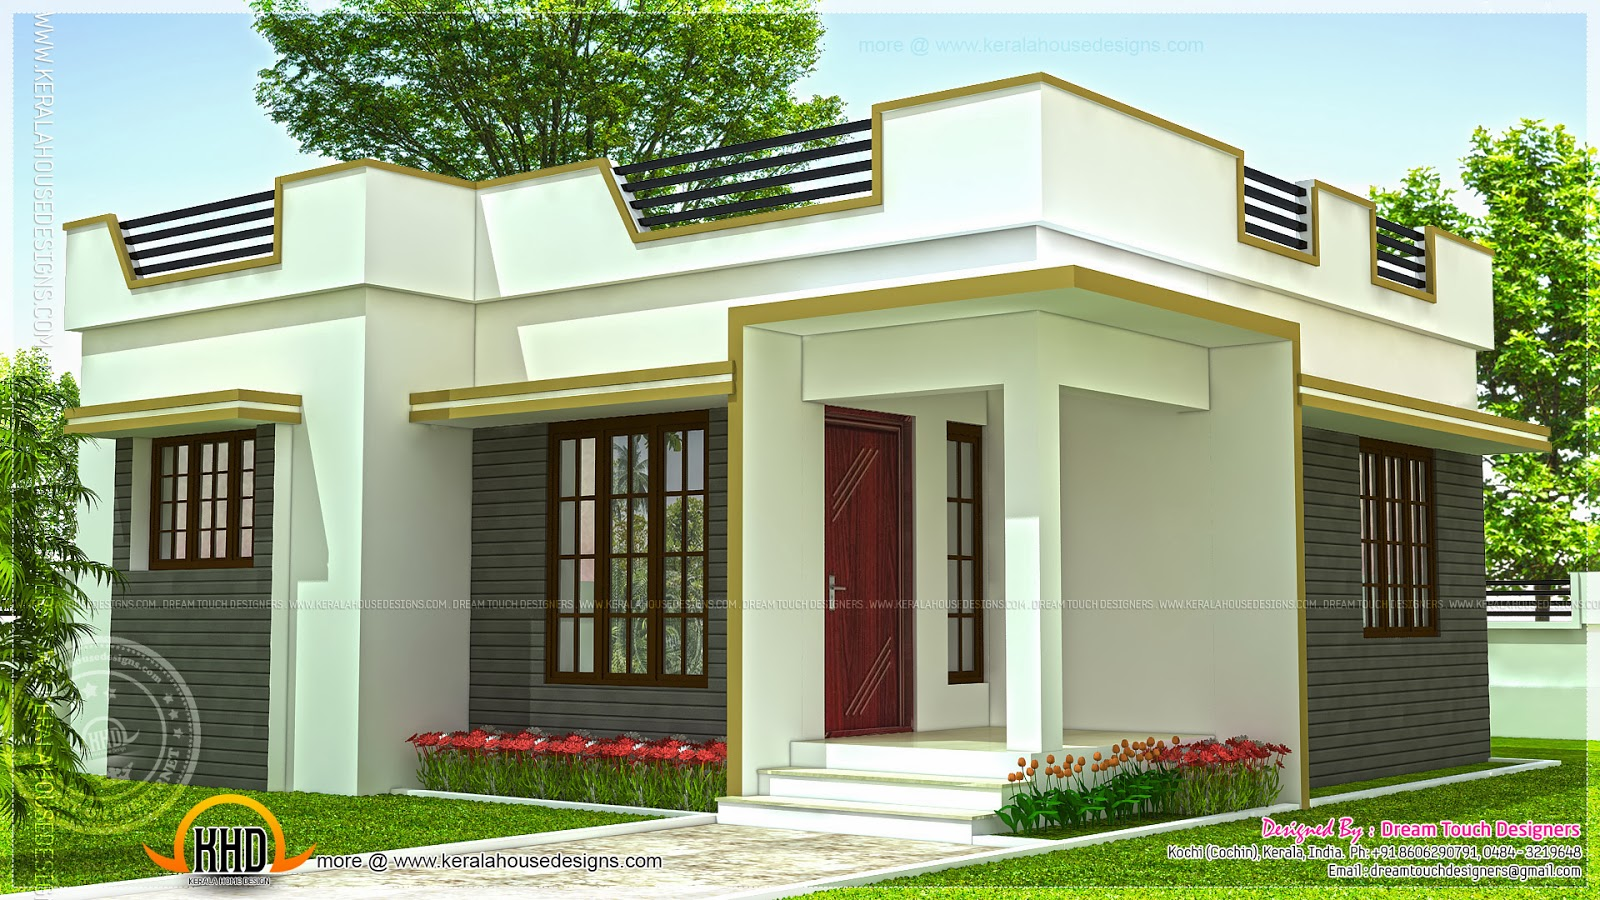 35 small and simple but beautiful house with roof deck for Small house desings